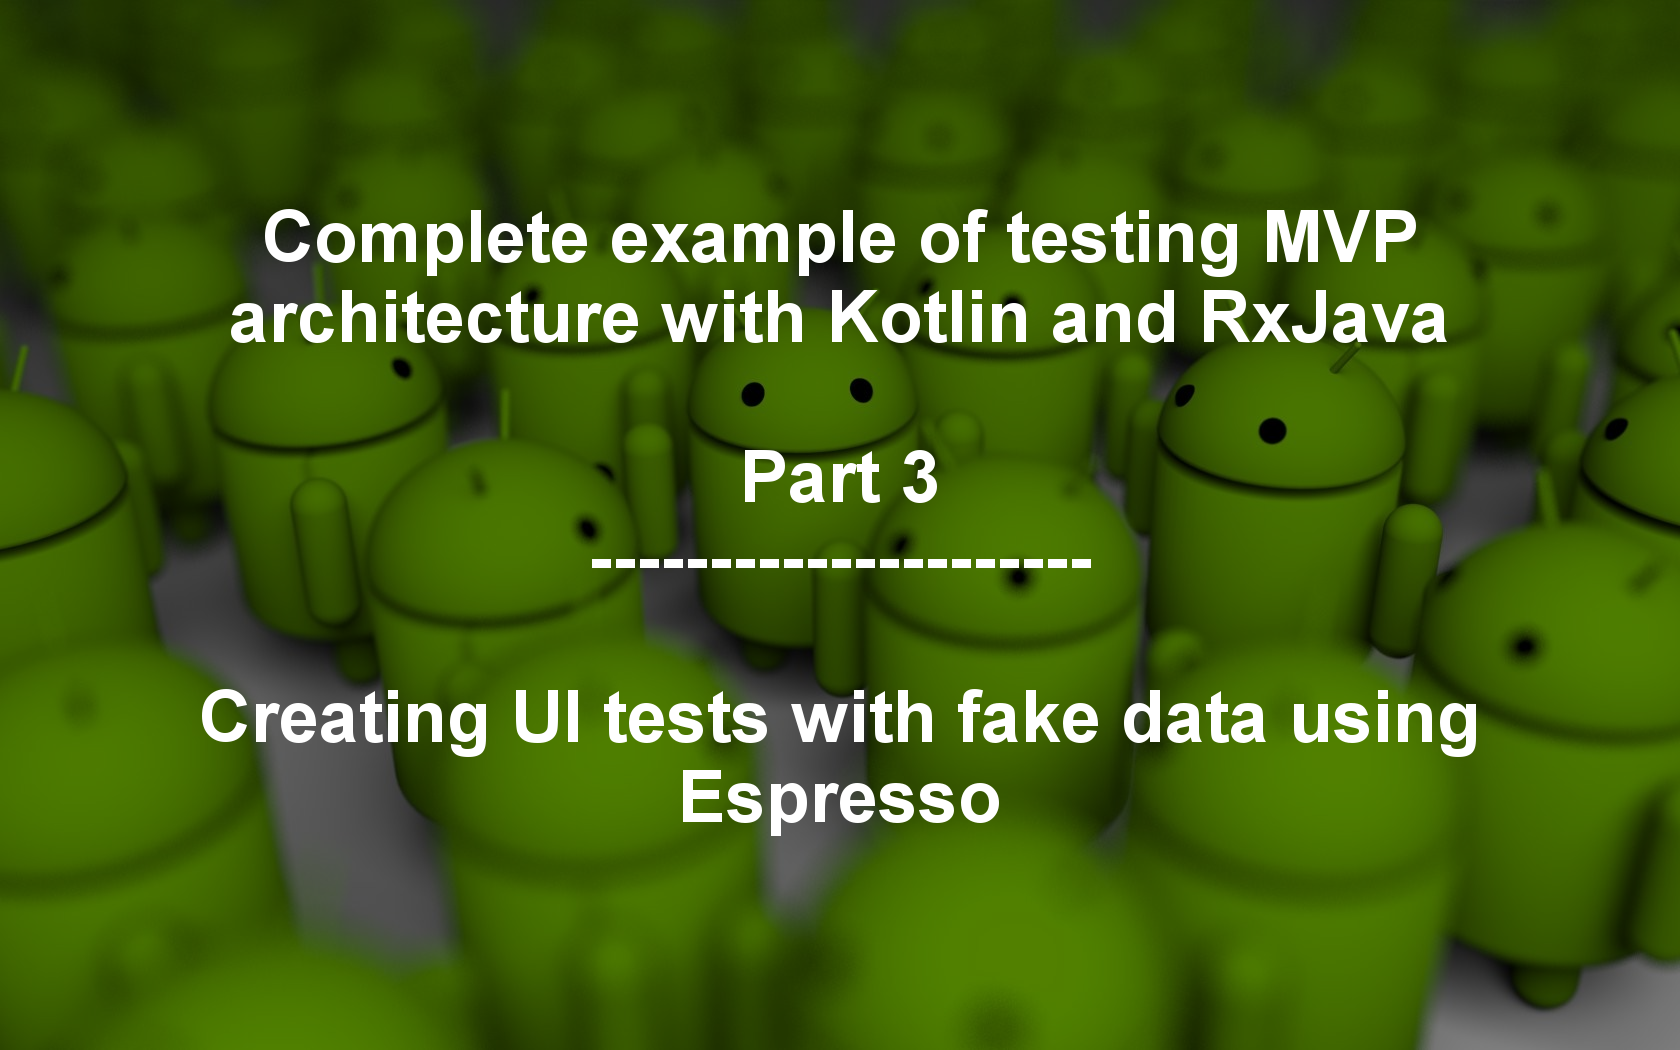 Complete example of testing MVP architecture with Kotlin and